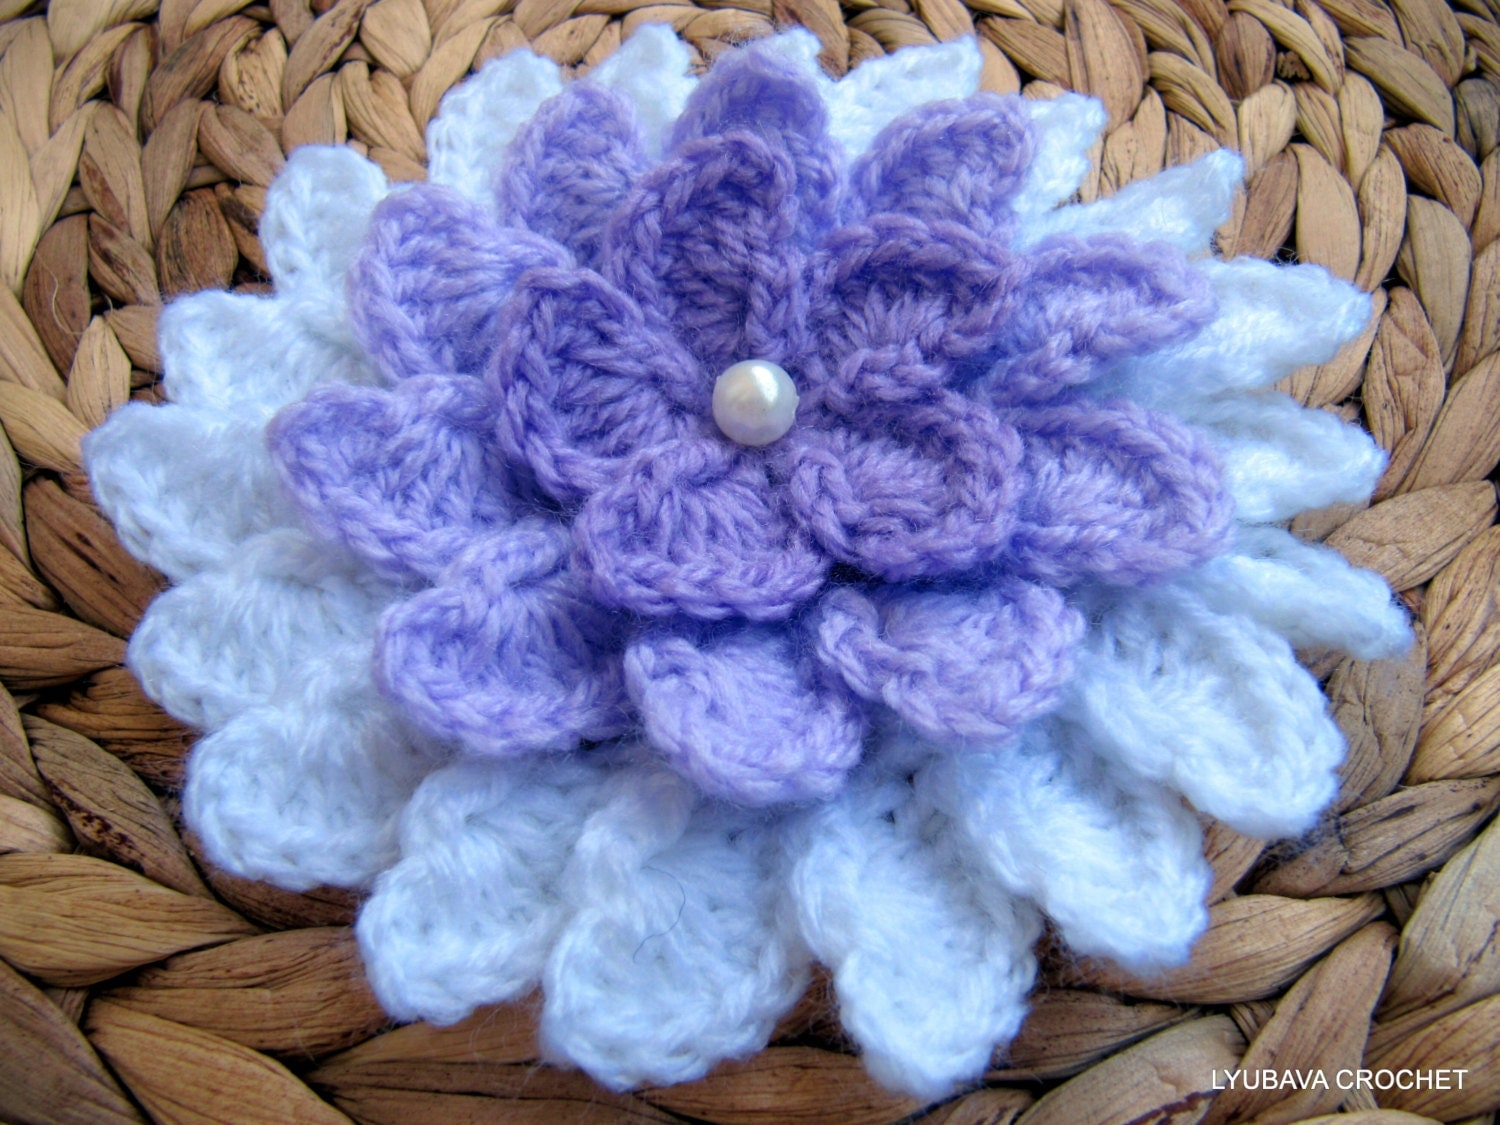 Crochet flower pattern lilac flower diy crafts unique zoom bankloansurffo Images